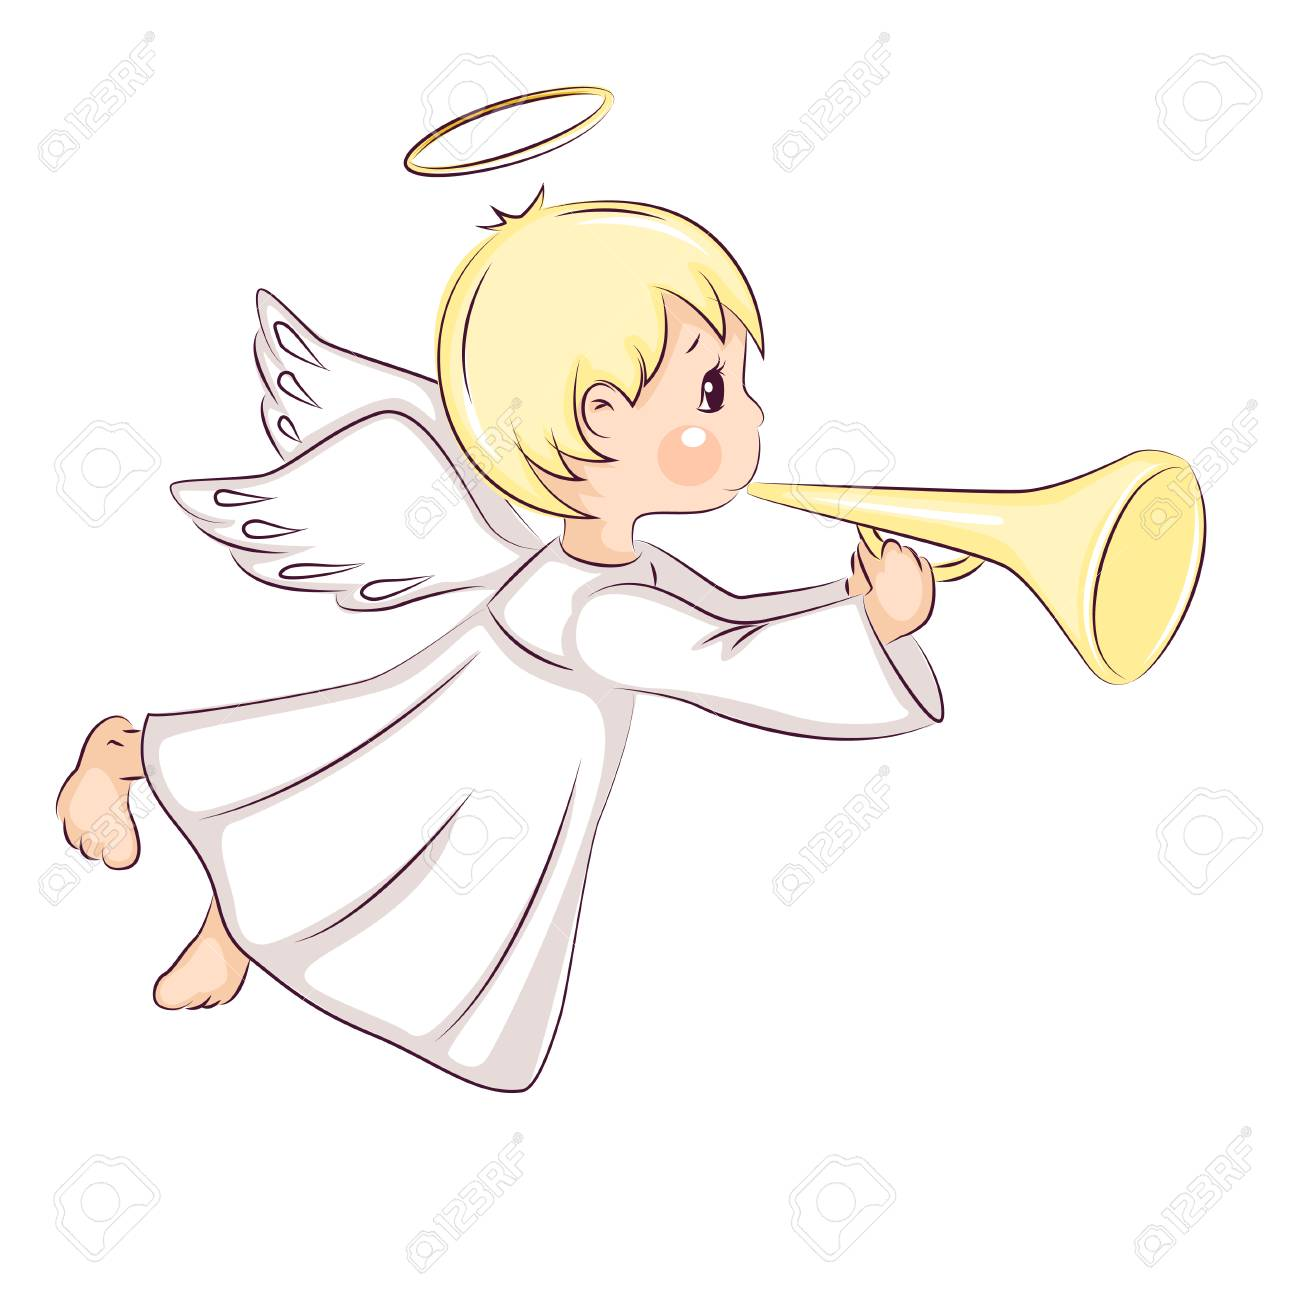 Christmas Angel.Cute Little Christmas Angel He Flies And Holds In His Hands